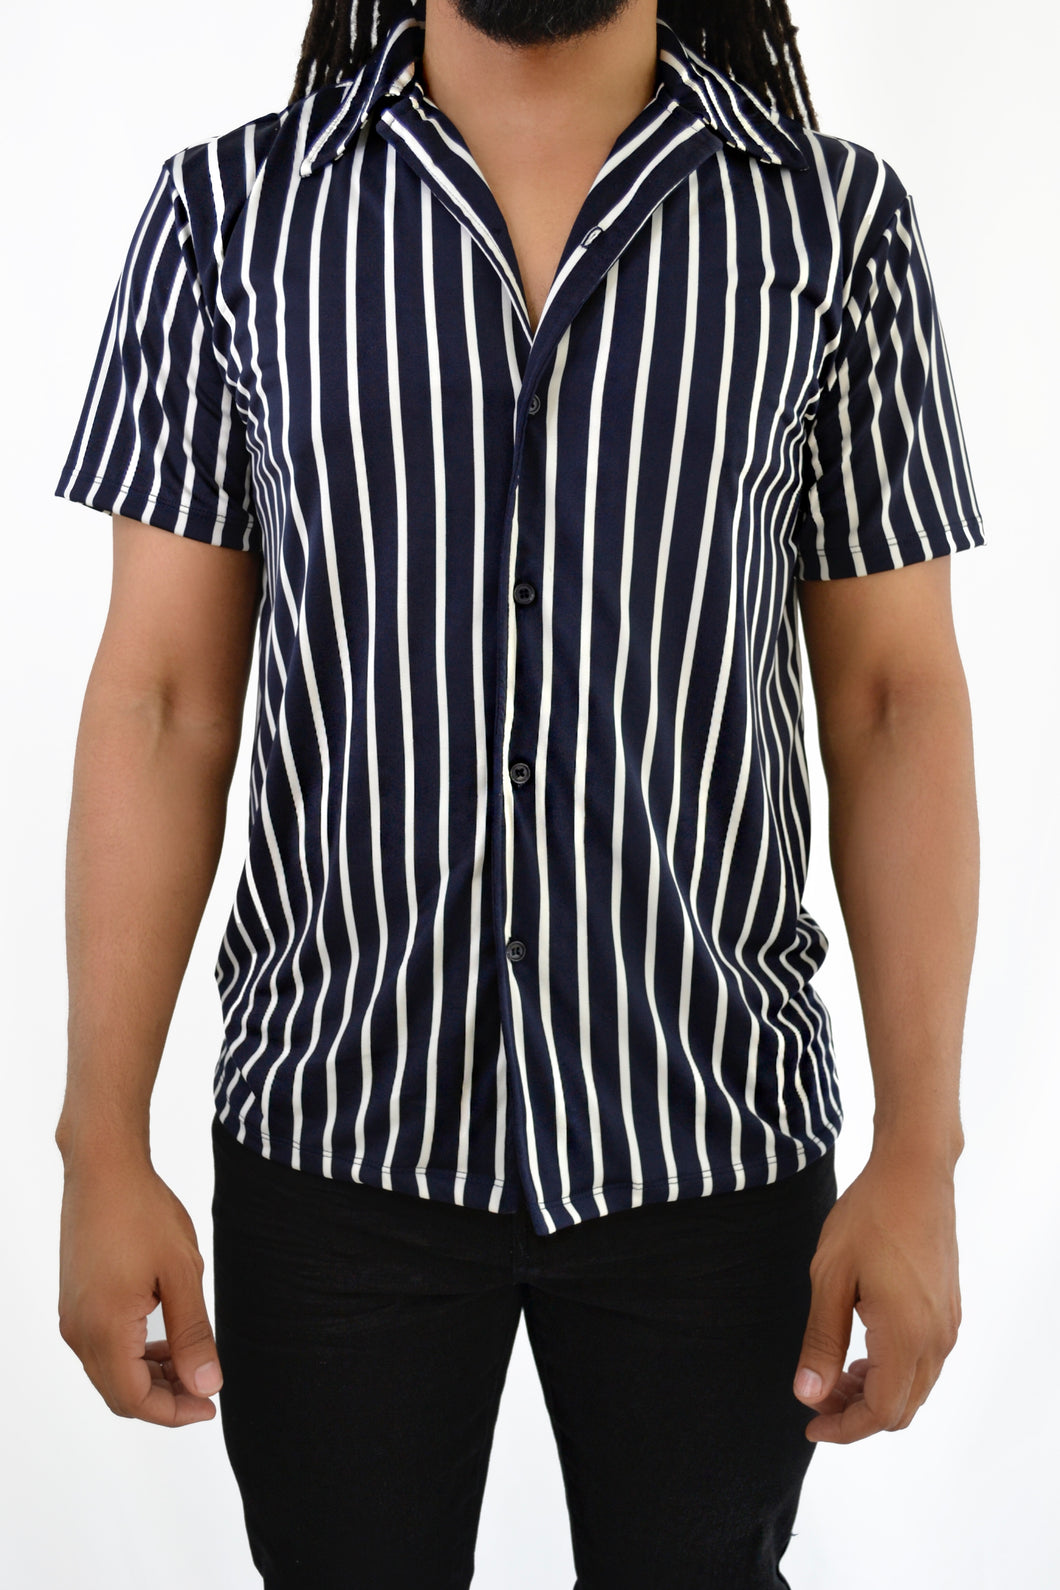 Striped Button-up Shirt (Blue)